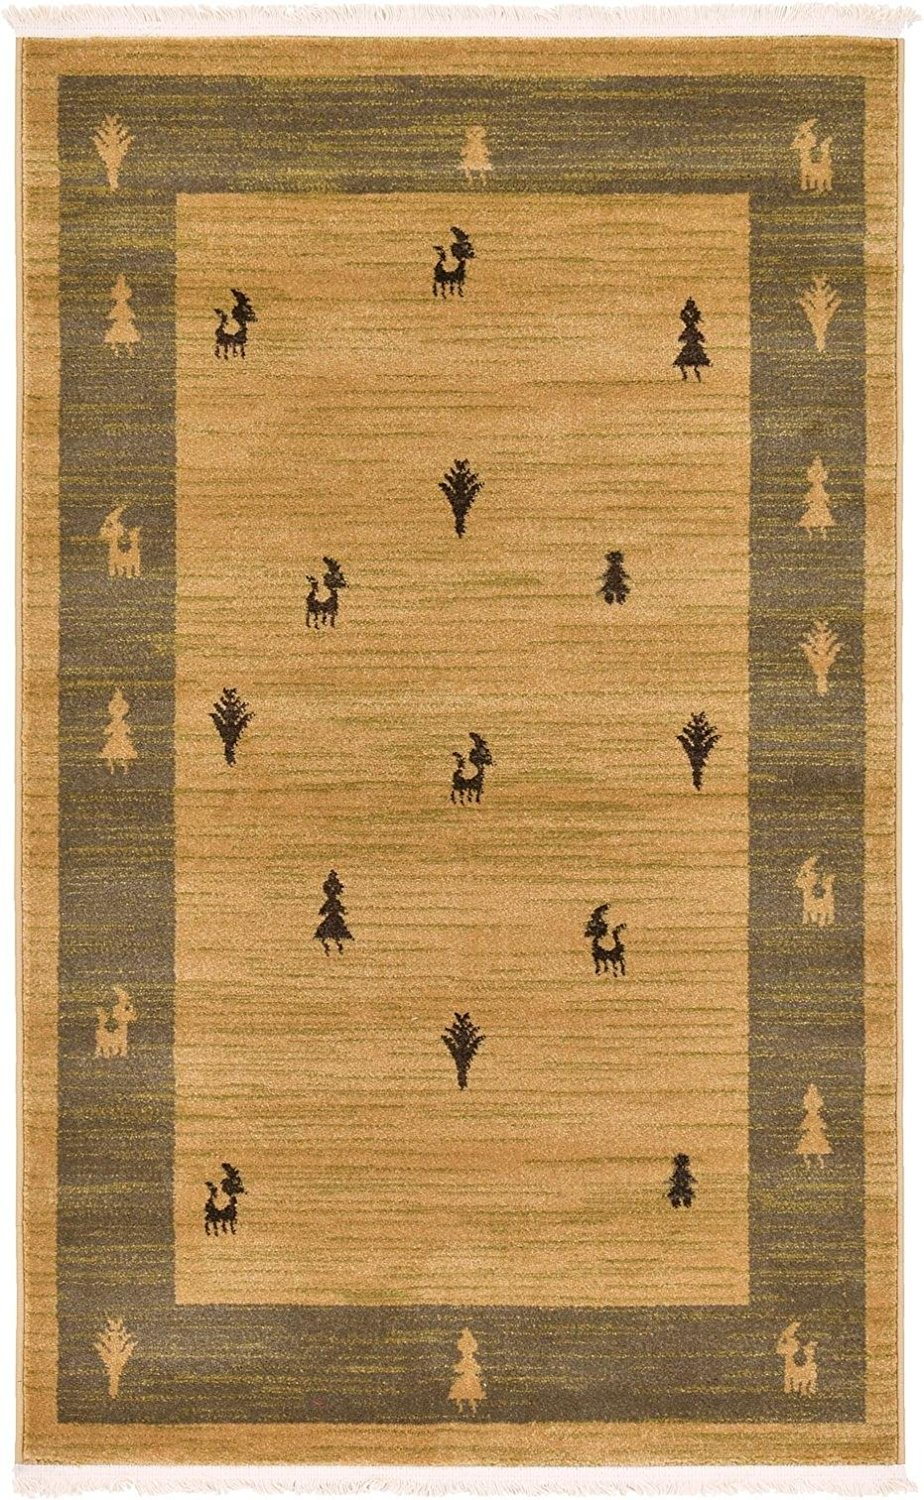 A2Z Rug 3.2-Feed-by-5.2-Feed Gabbeh Collection Area Rug - Tan Modern & Traditional rugs for living room - rugs for dining room & bedroom - Floor Carpet